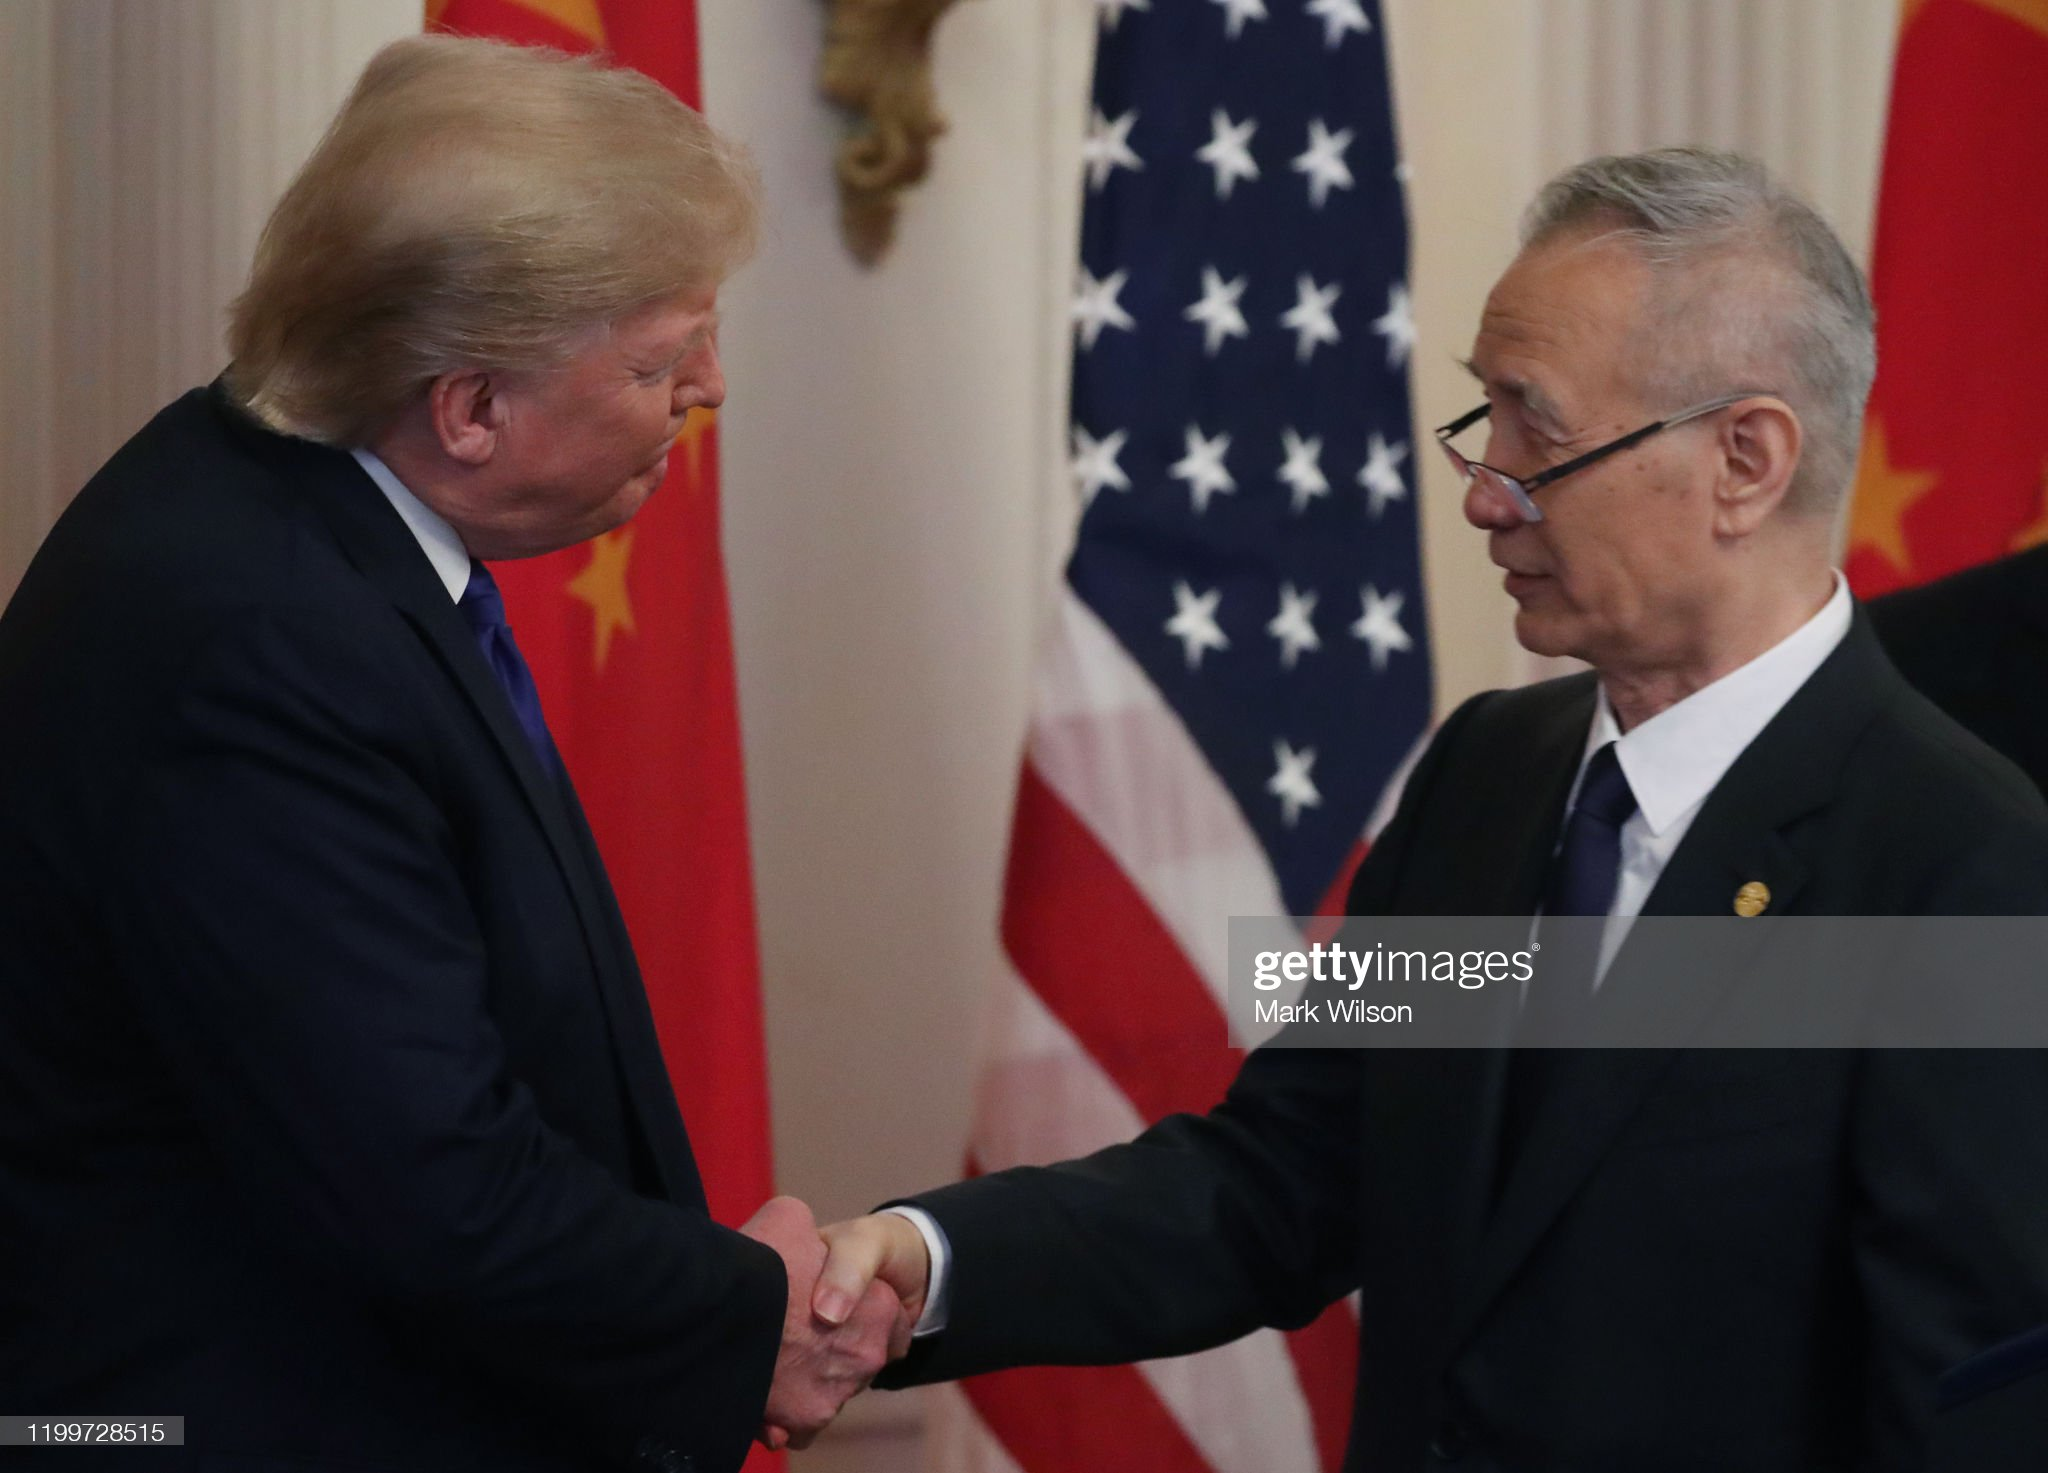 President Trump Participates In Signing Ceremony For Trade Deal With China : News Photo